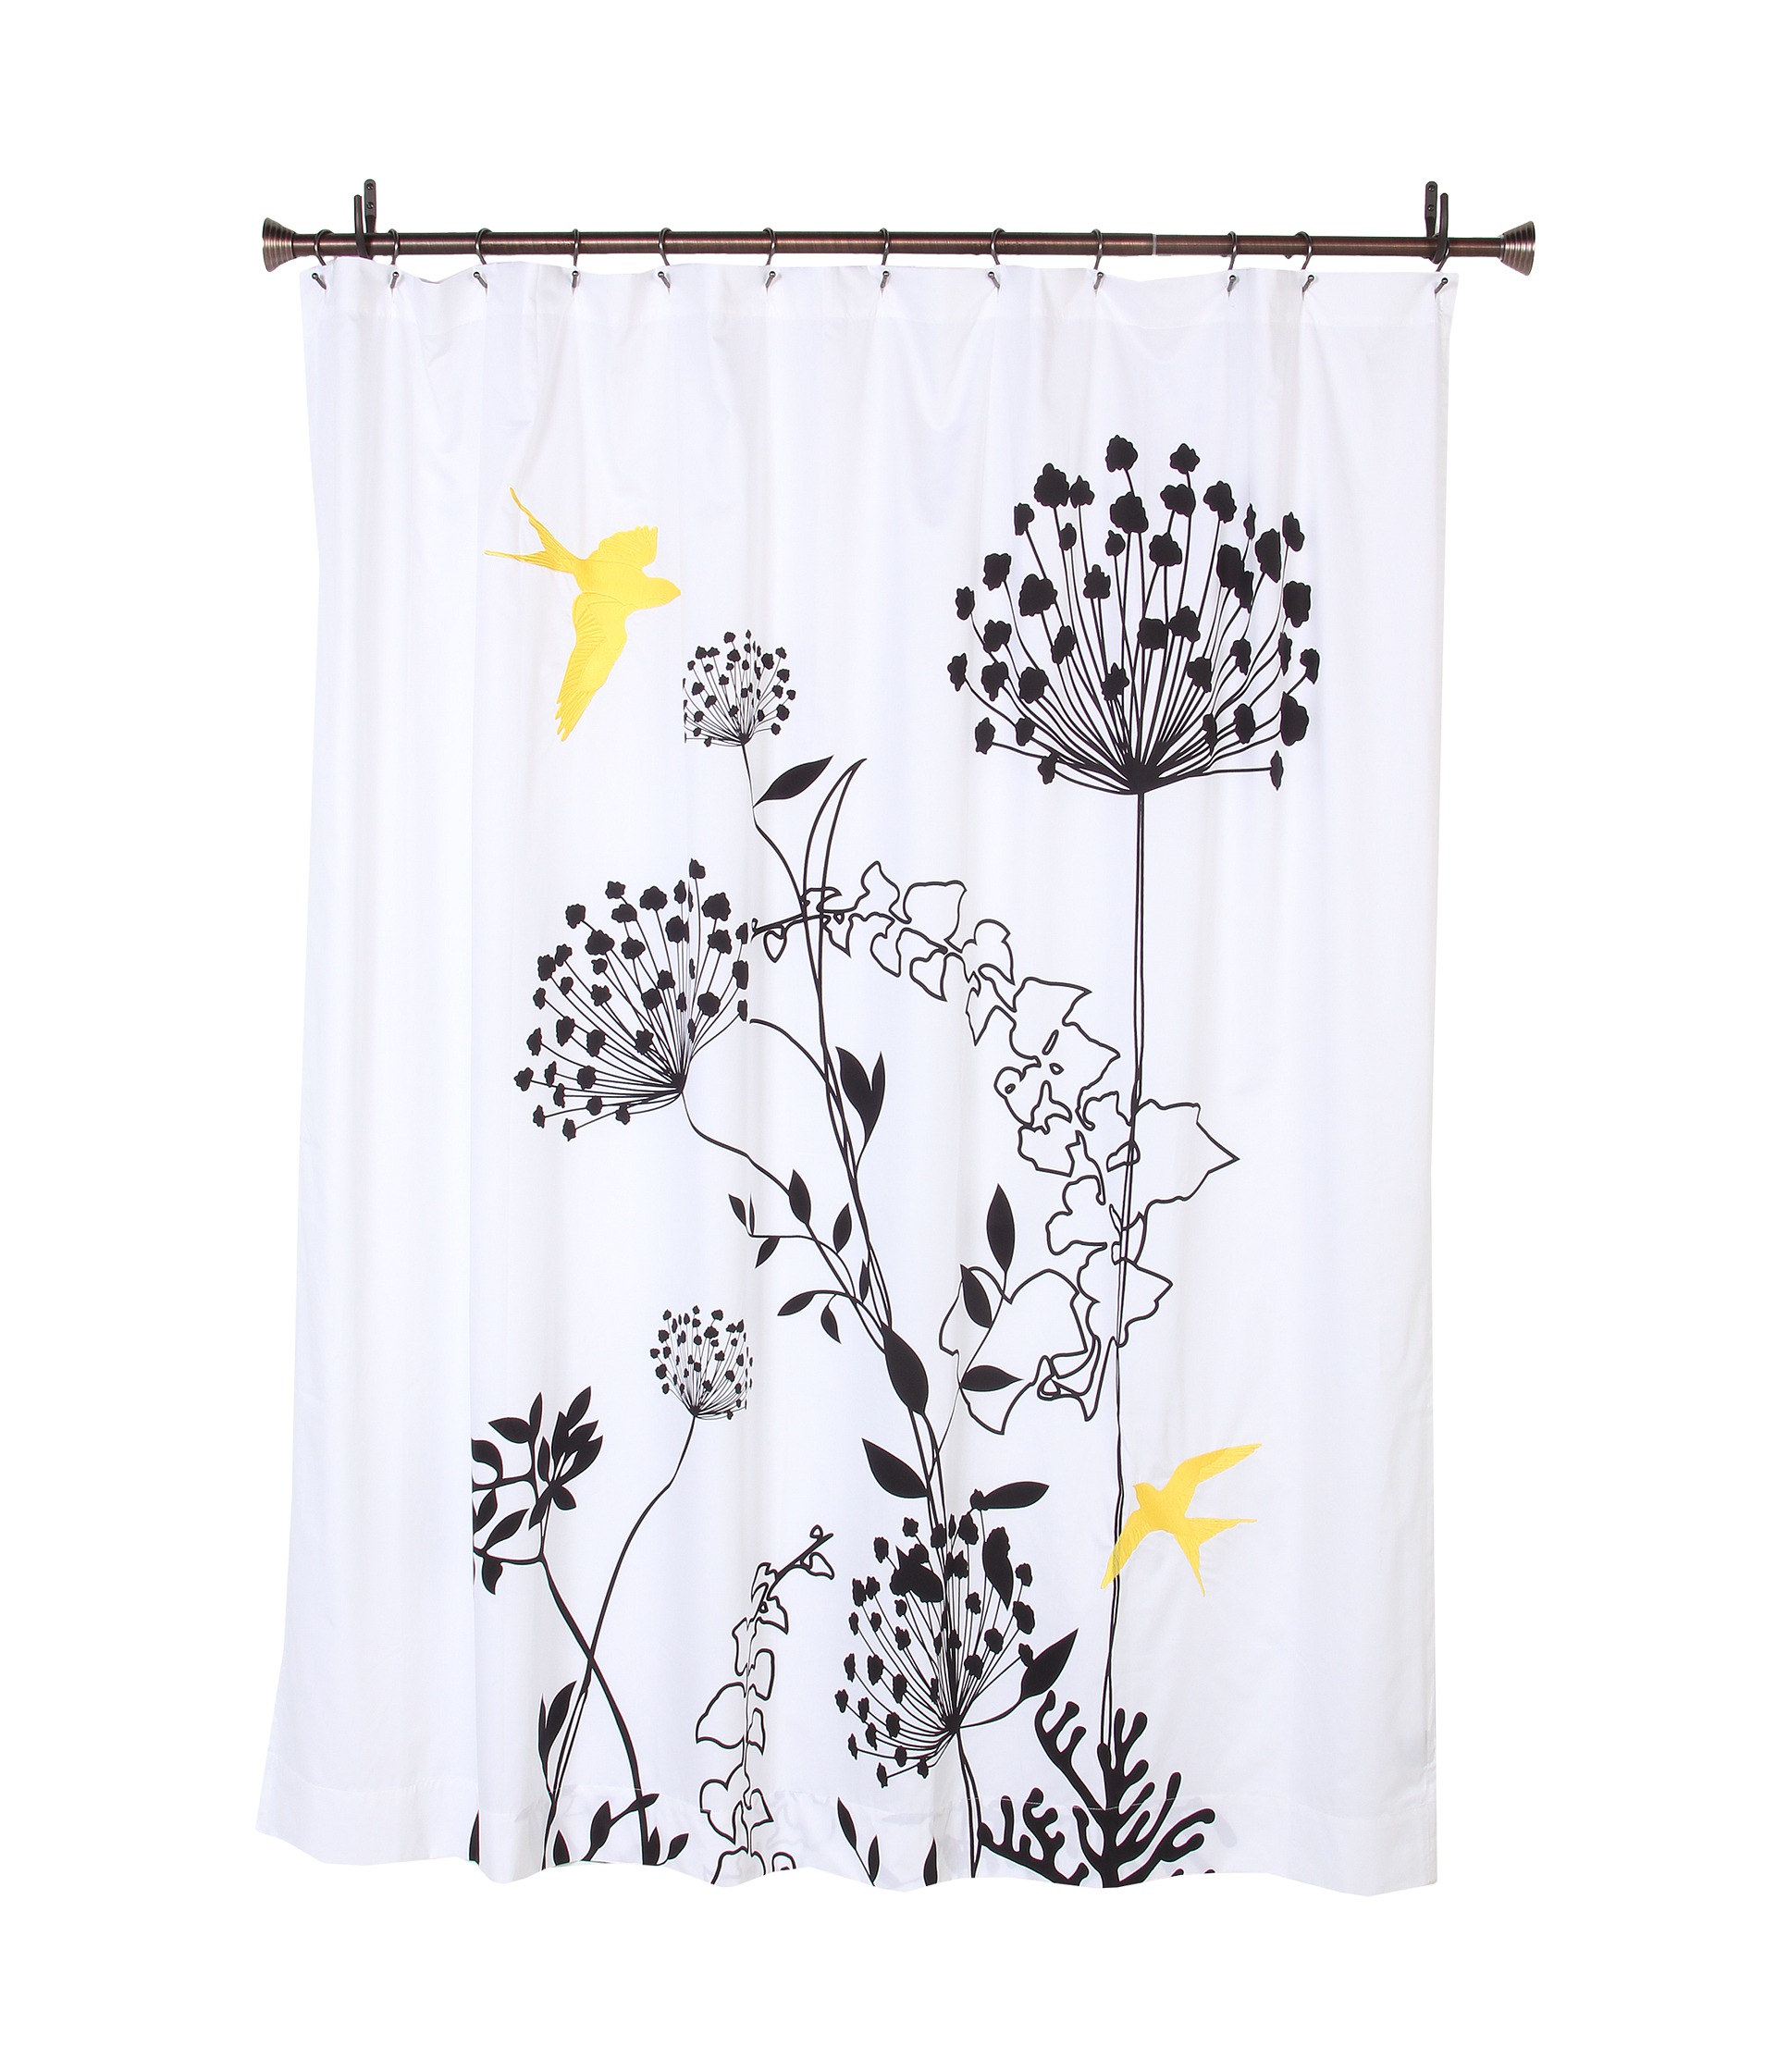 blissliving home anis yellow shower curtain black white shipped free at zappos. Black Bedroom Furniture Sets. Home Design Ideas